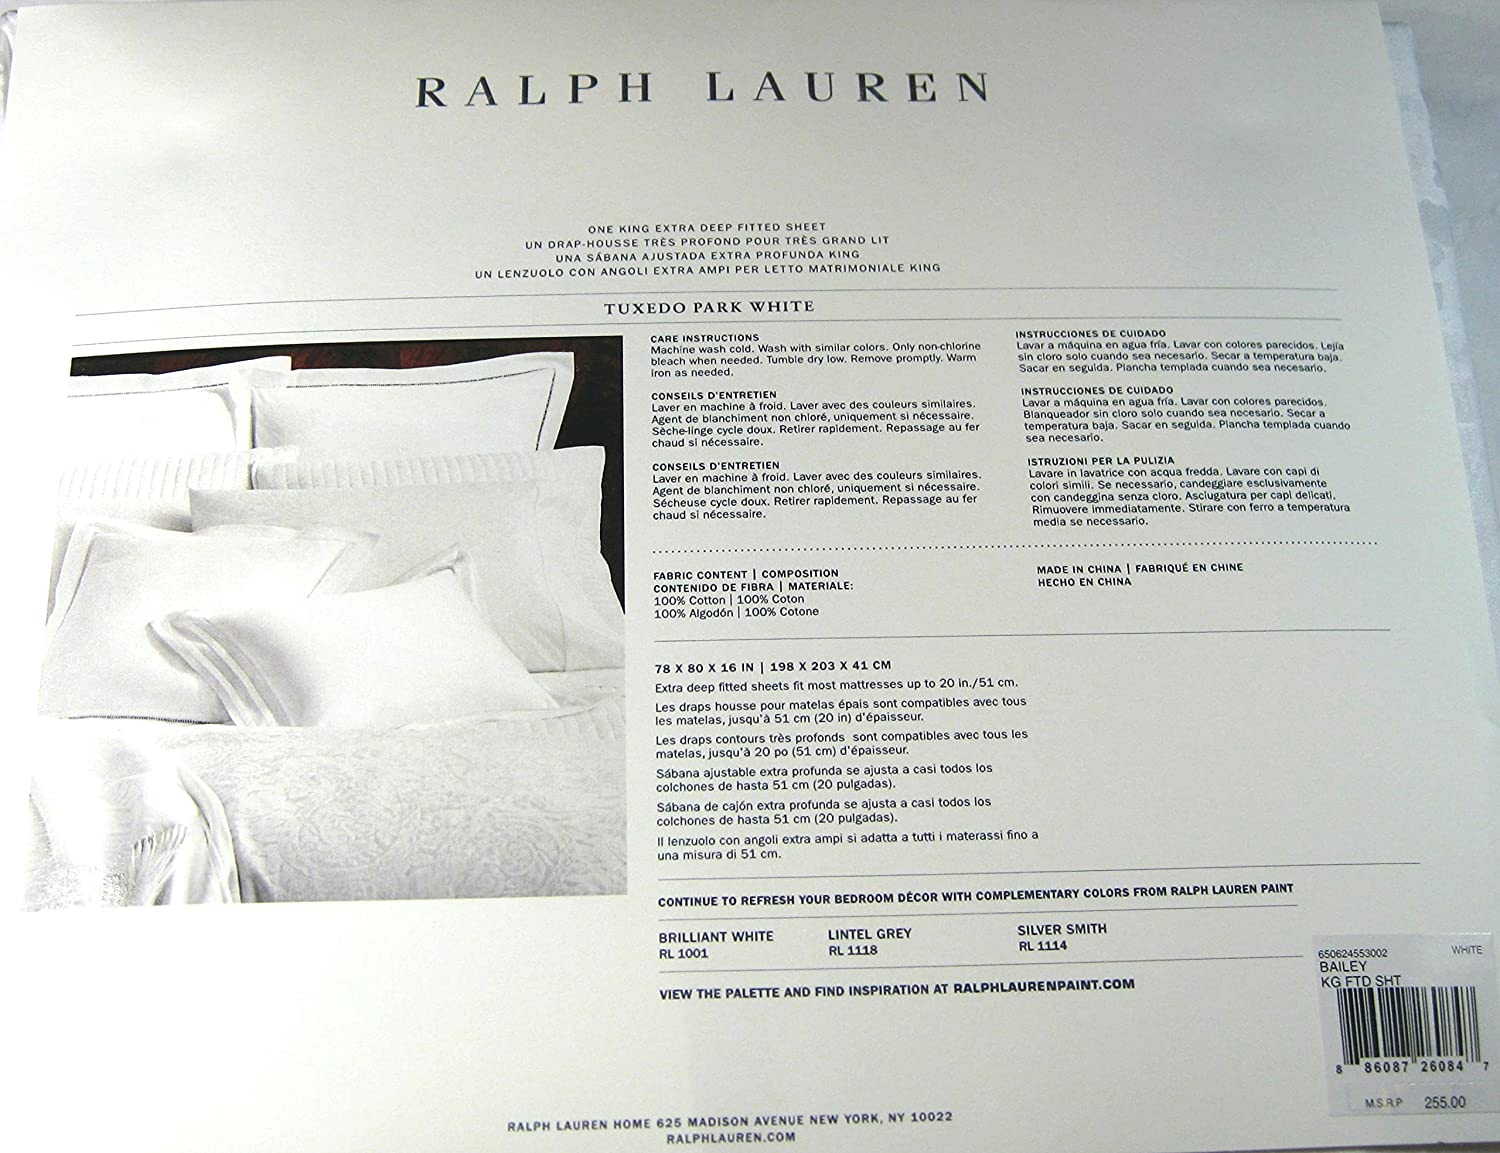 Amazon.com: Ralph Lauren Extra Deep Fitted King Sheet Tuxedo Park Bailey White: Home & Kitchen